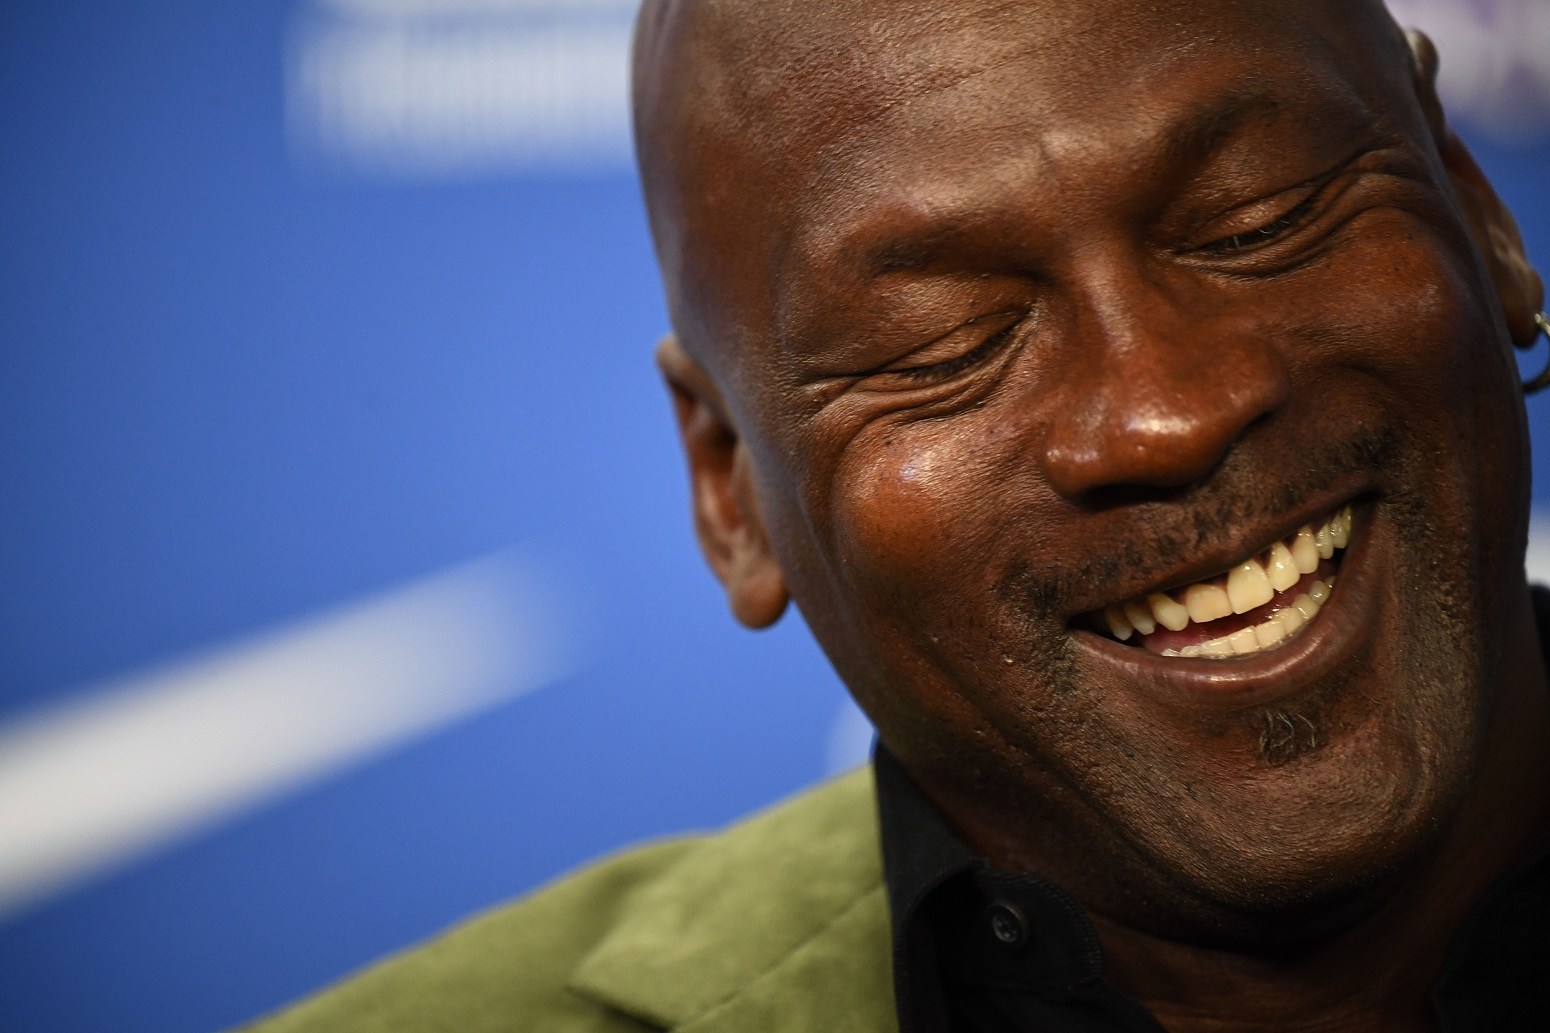 Michael Jordan refuses to believe another player will measure up to him